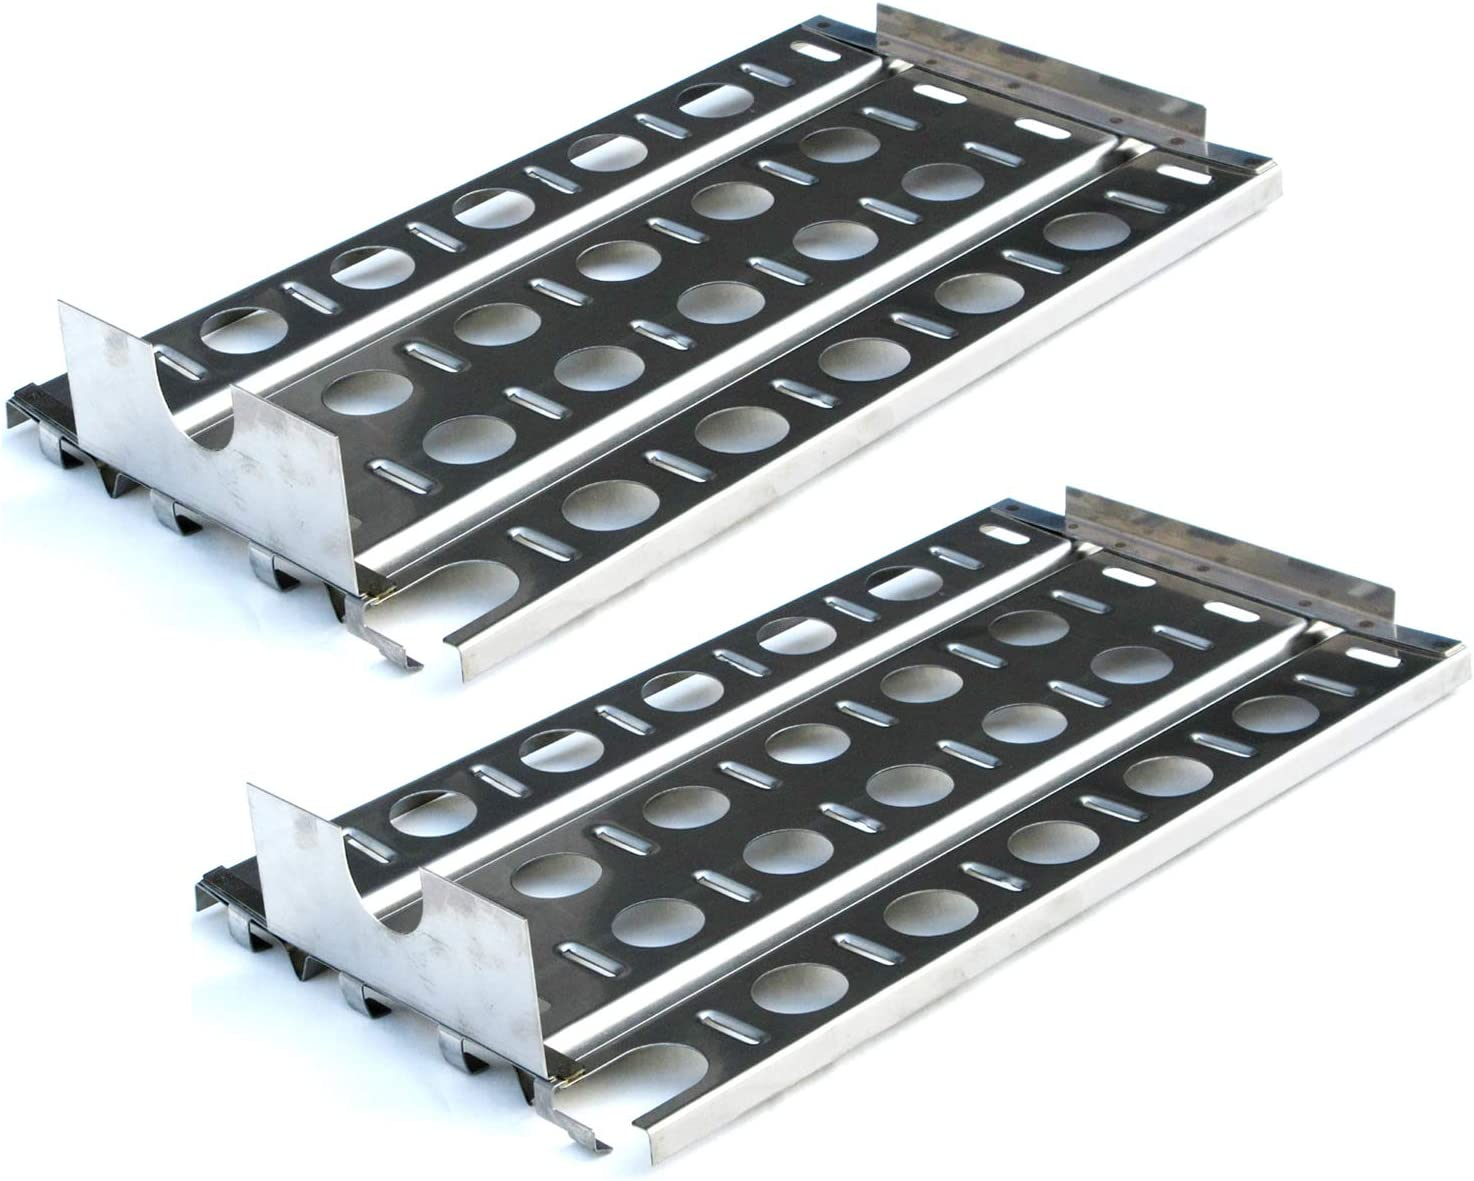 Direct Store Parts DP114 (2-Pack) Stainless Steel Heat Plates Replacement for Lynx Gas Grill Models (2) : Garden & Outdoor